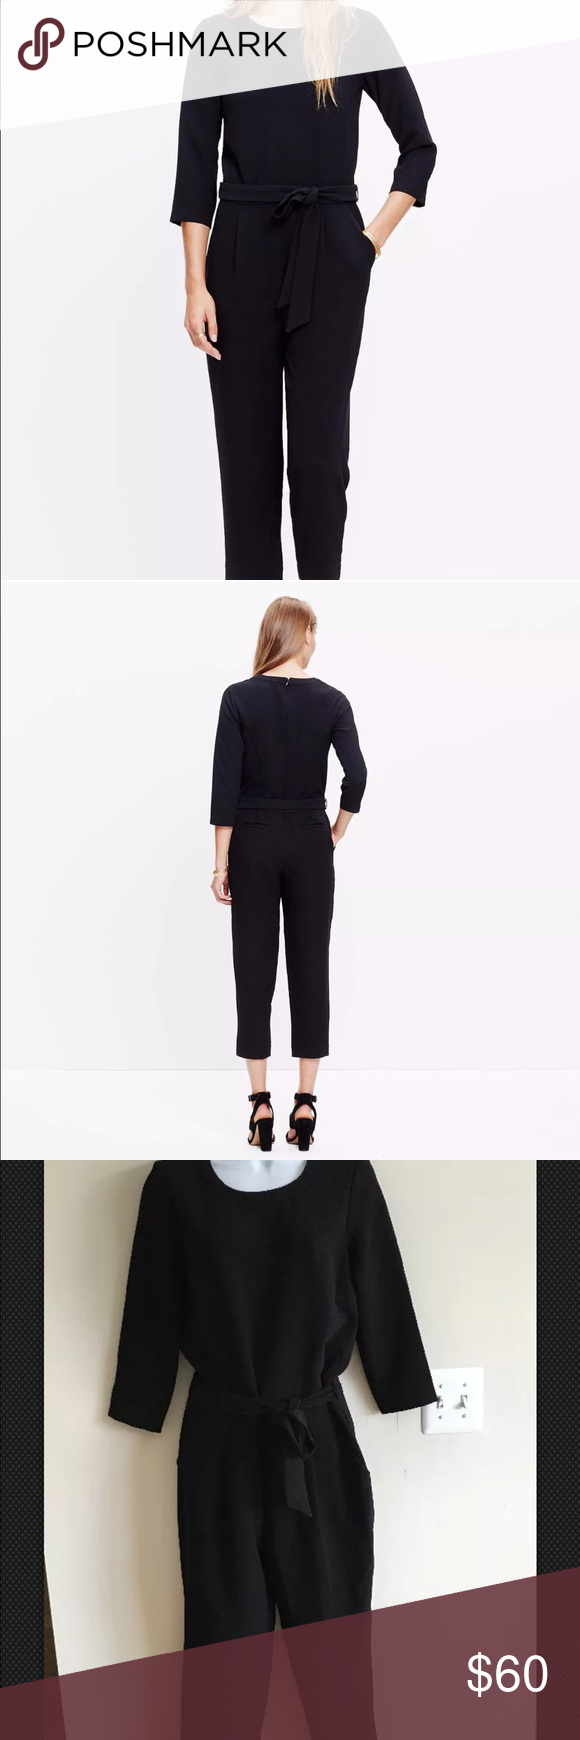 Madewell Black Sloan Jumpsuit NWT E4197 $138 Madewell Sloan Jumpsuit brand new with tags.Style number is E4197, brand new with tags $138,color is black,sizes 6,2,0 Madewell Other